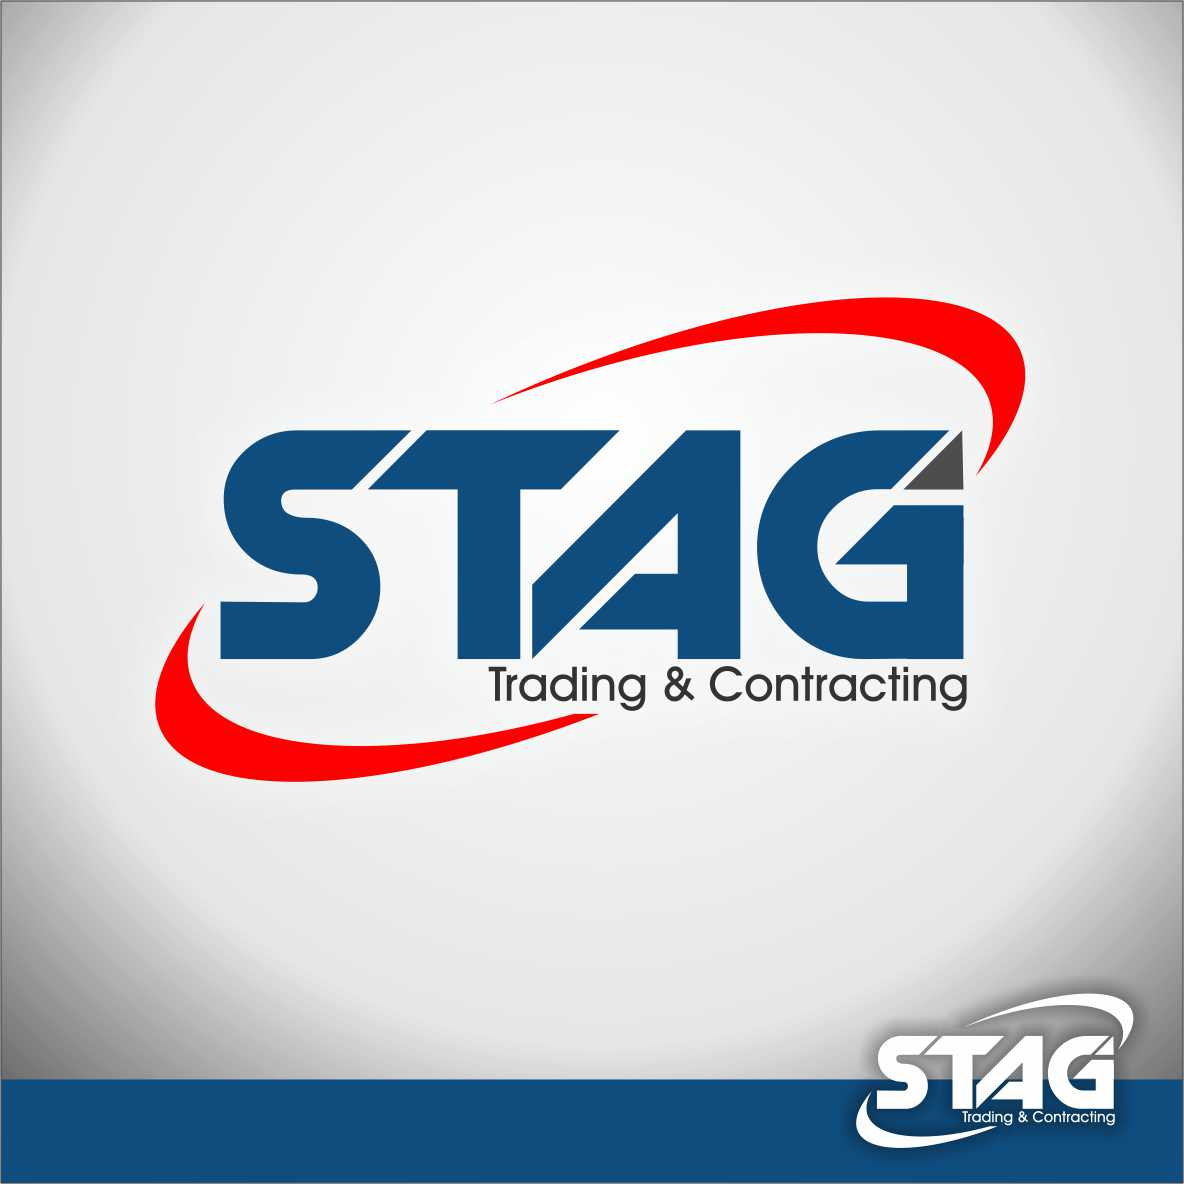 Logo Design by arteo_design - Entry No. 57 in the Logo Design Contest Captivating Logo Design for STAG Trading & Contracting.